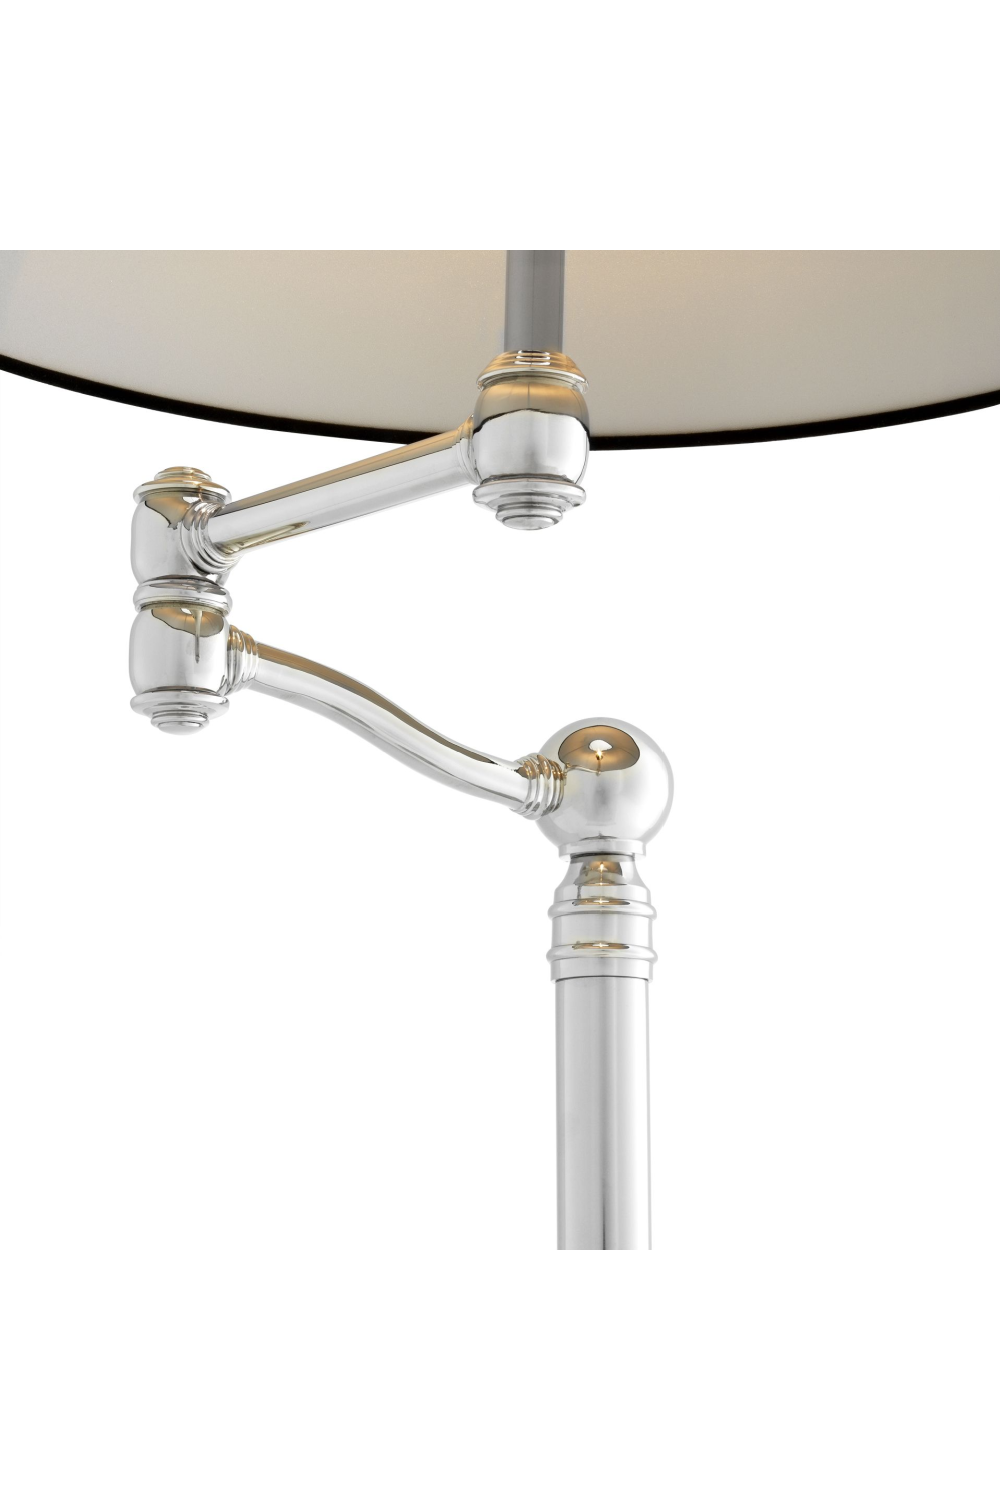 Modern Adjustable Arm Floor Lamp | Eichholtz Regis |Eichholtz Retailer